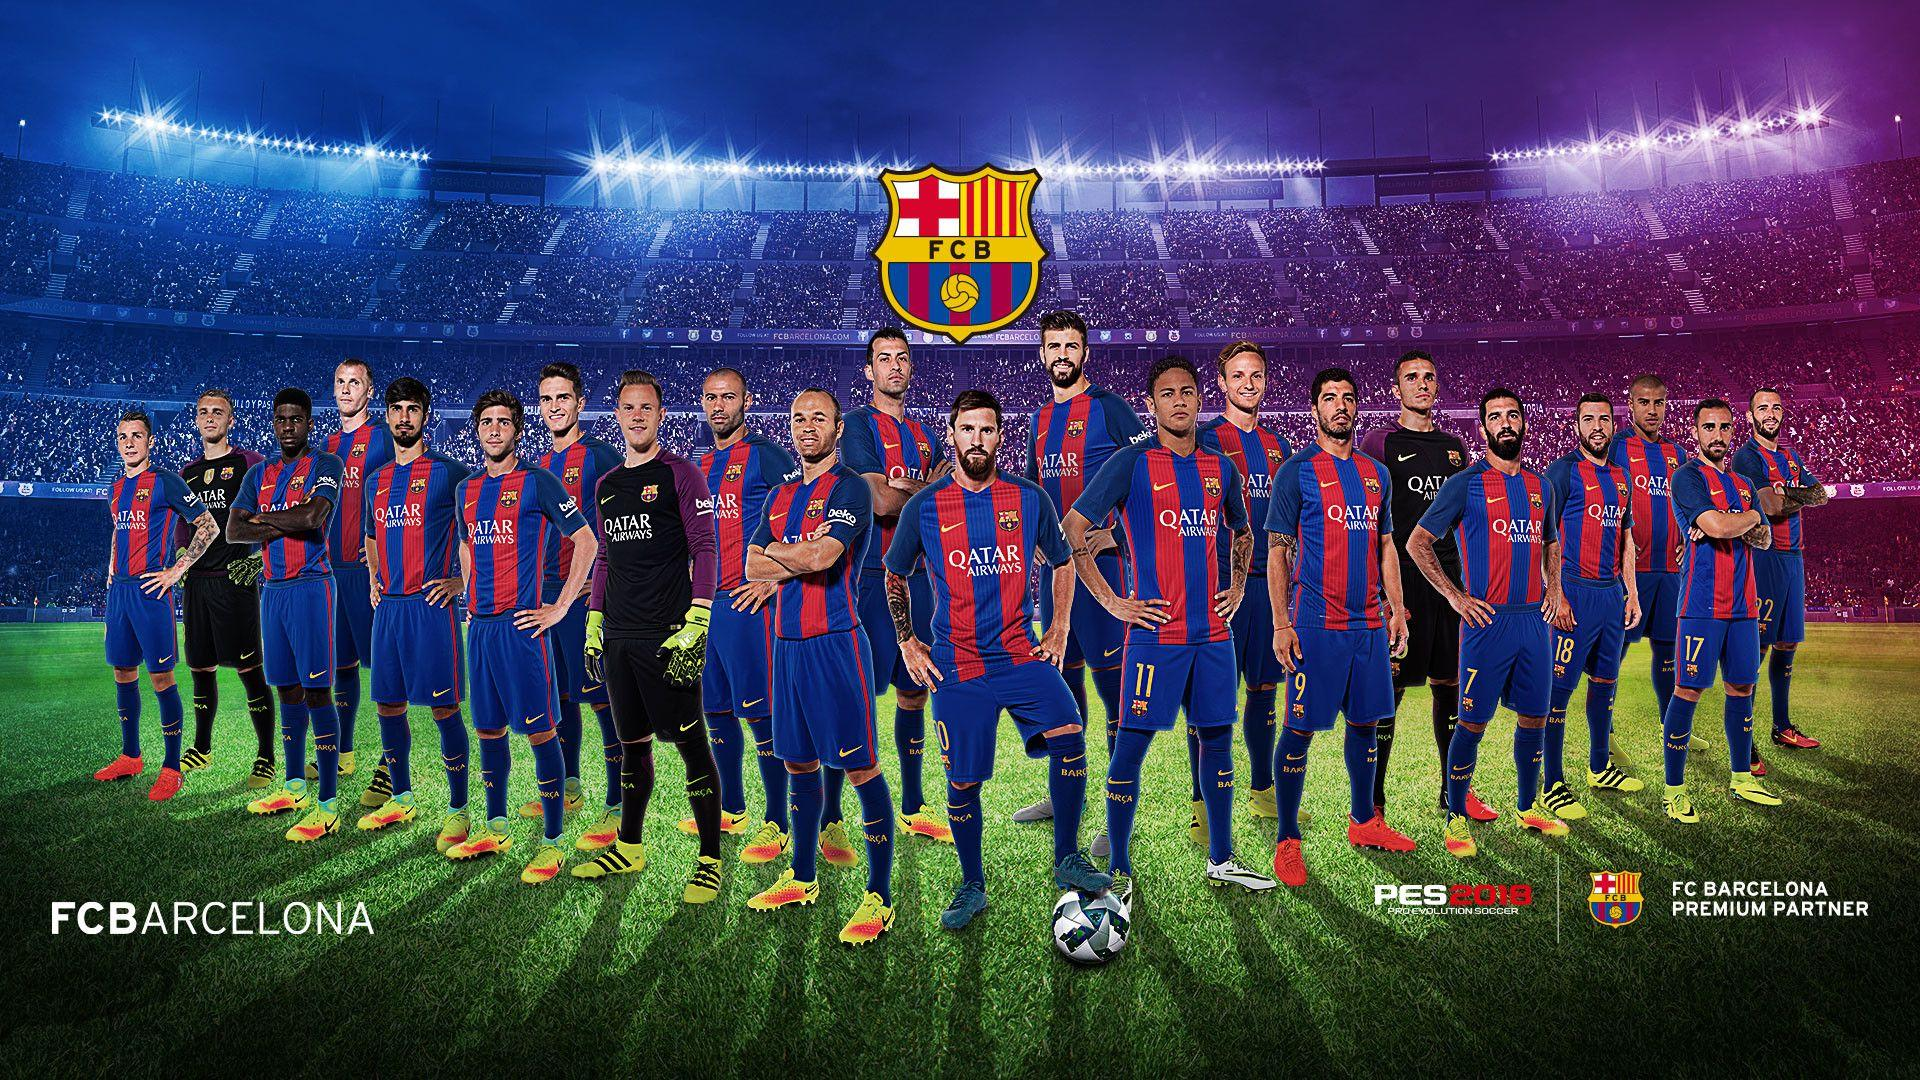 Fc barcelona 2018 wallpapers wallpaper cave fc barcelona wallpaper 2018 67 images stopboris Choice Image